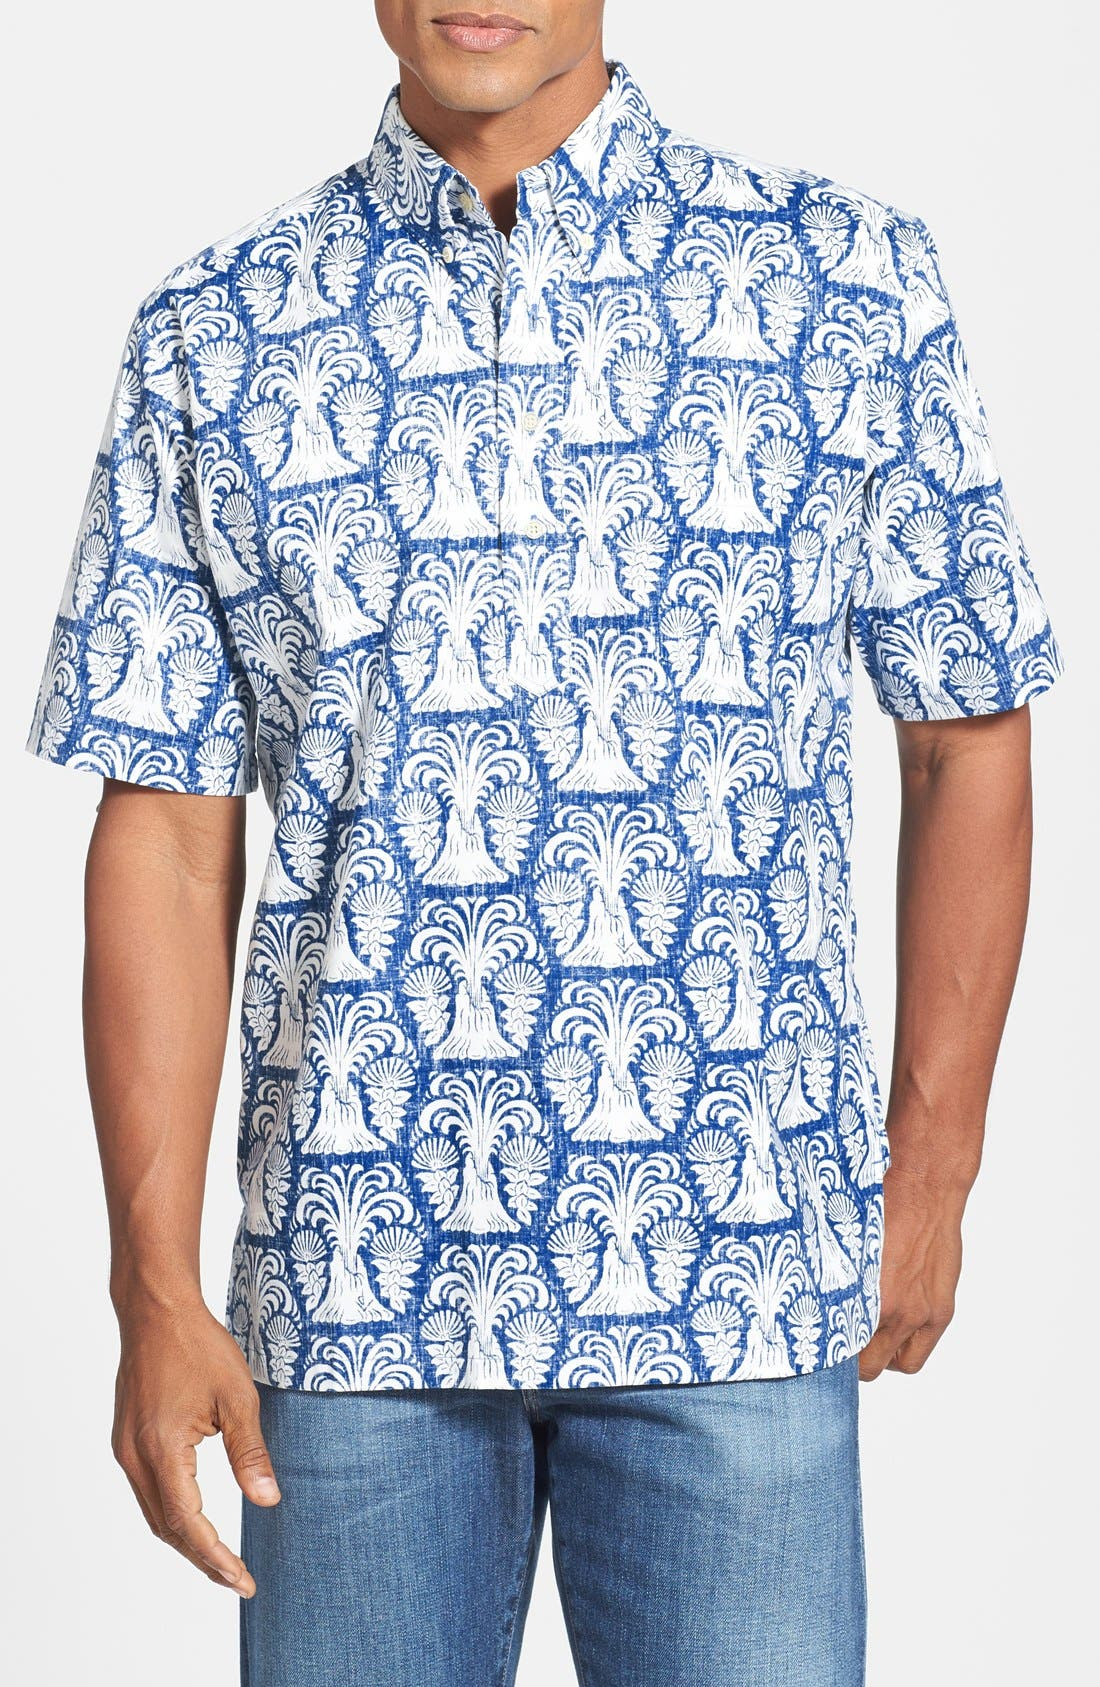 Alternate Image 1 Selected - Reyn Spooner 'Volcano' Classic Fit Sport Shirt